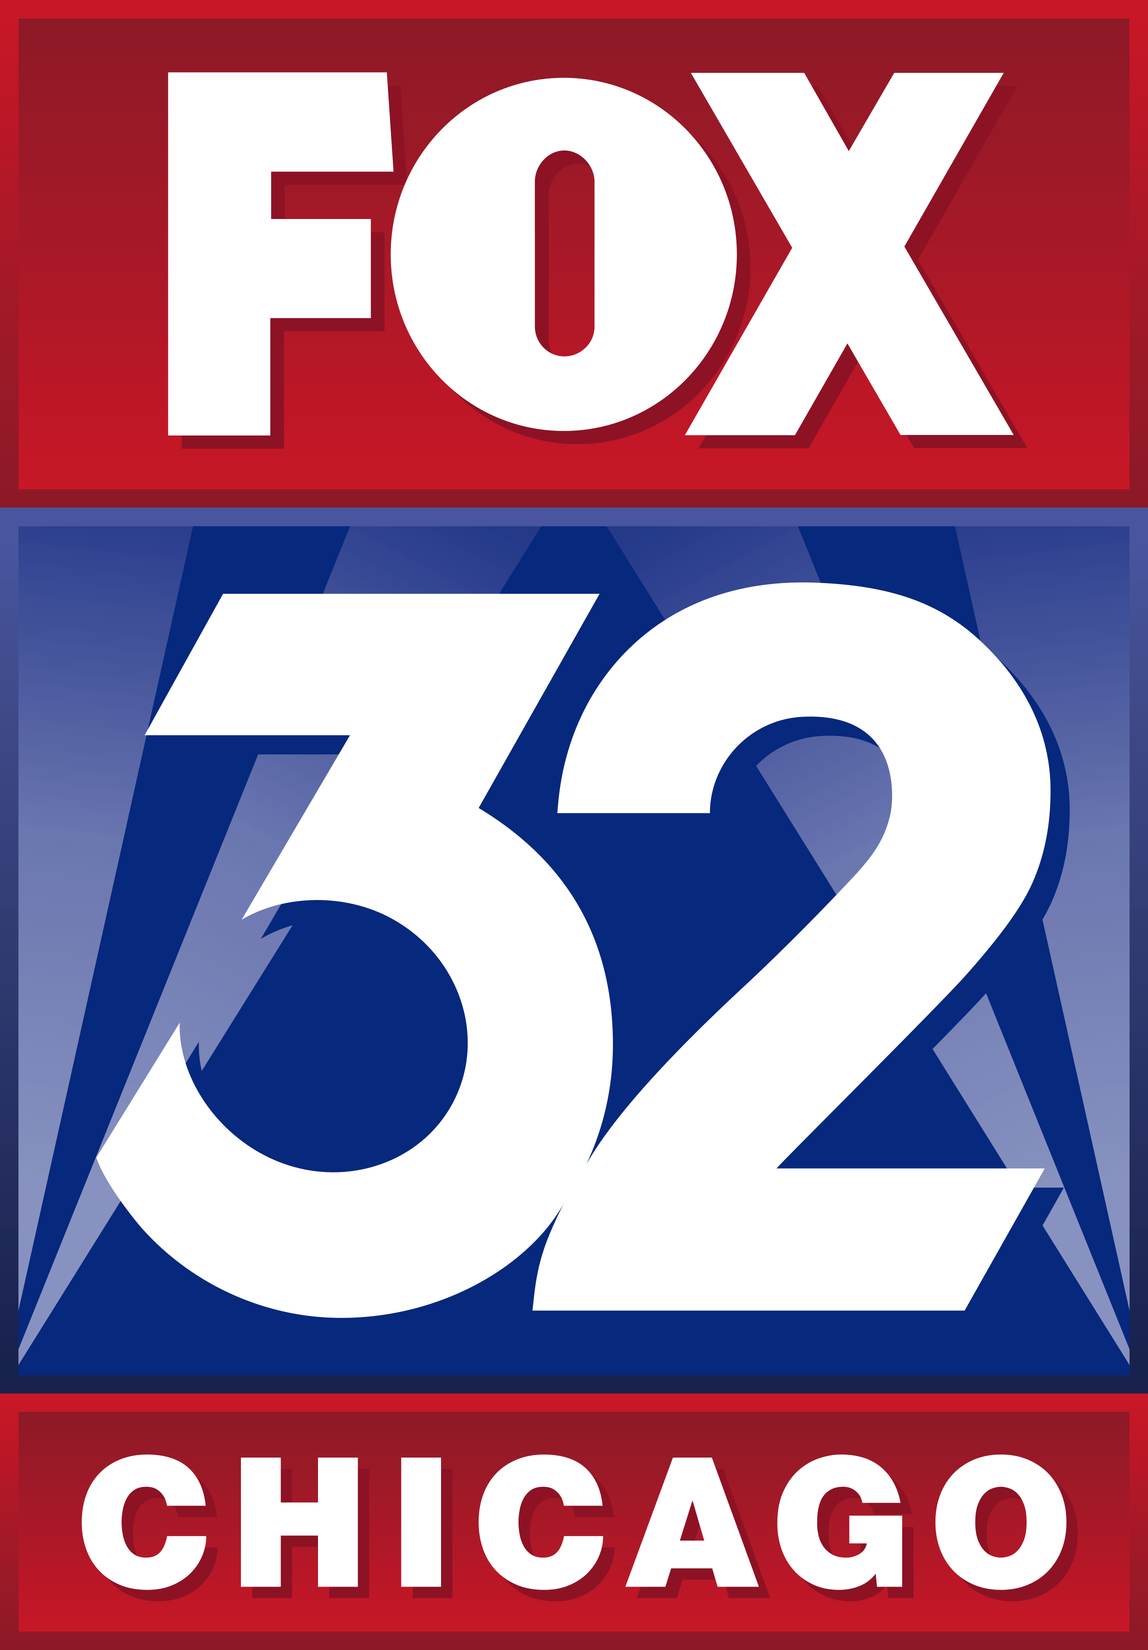 Chicago fox 32